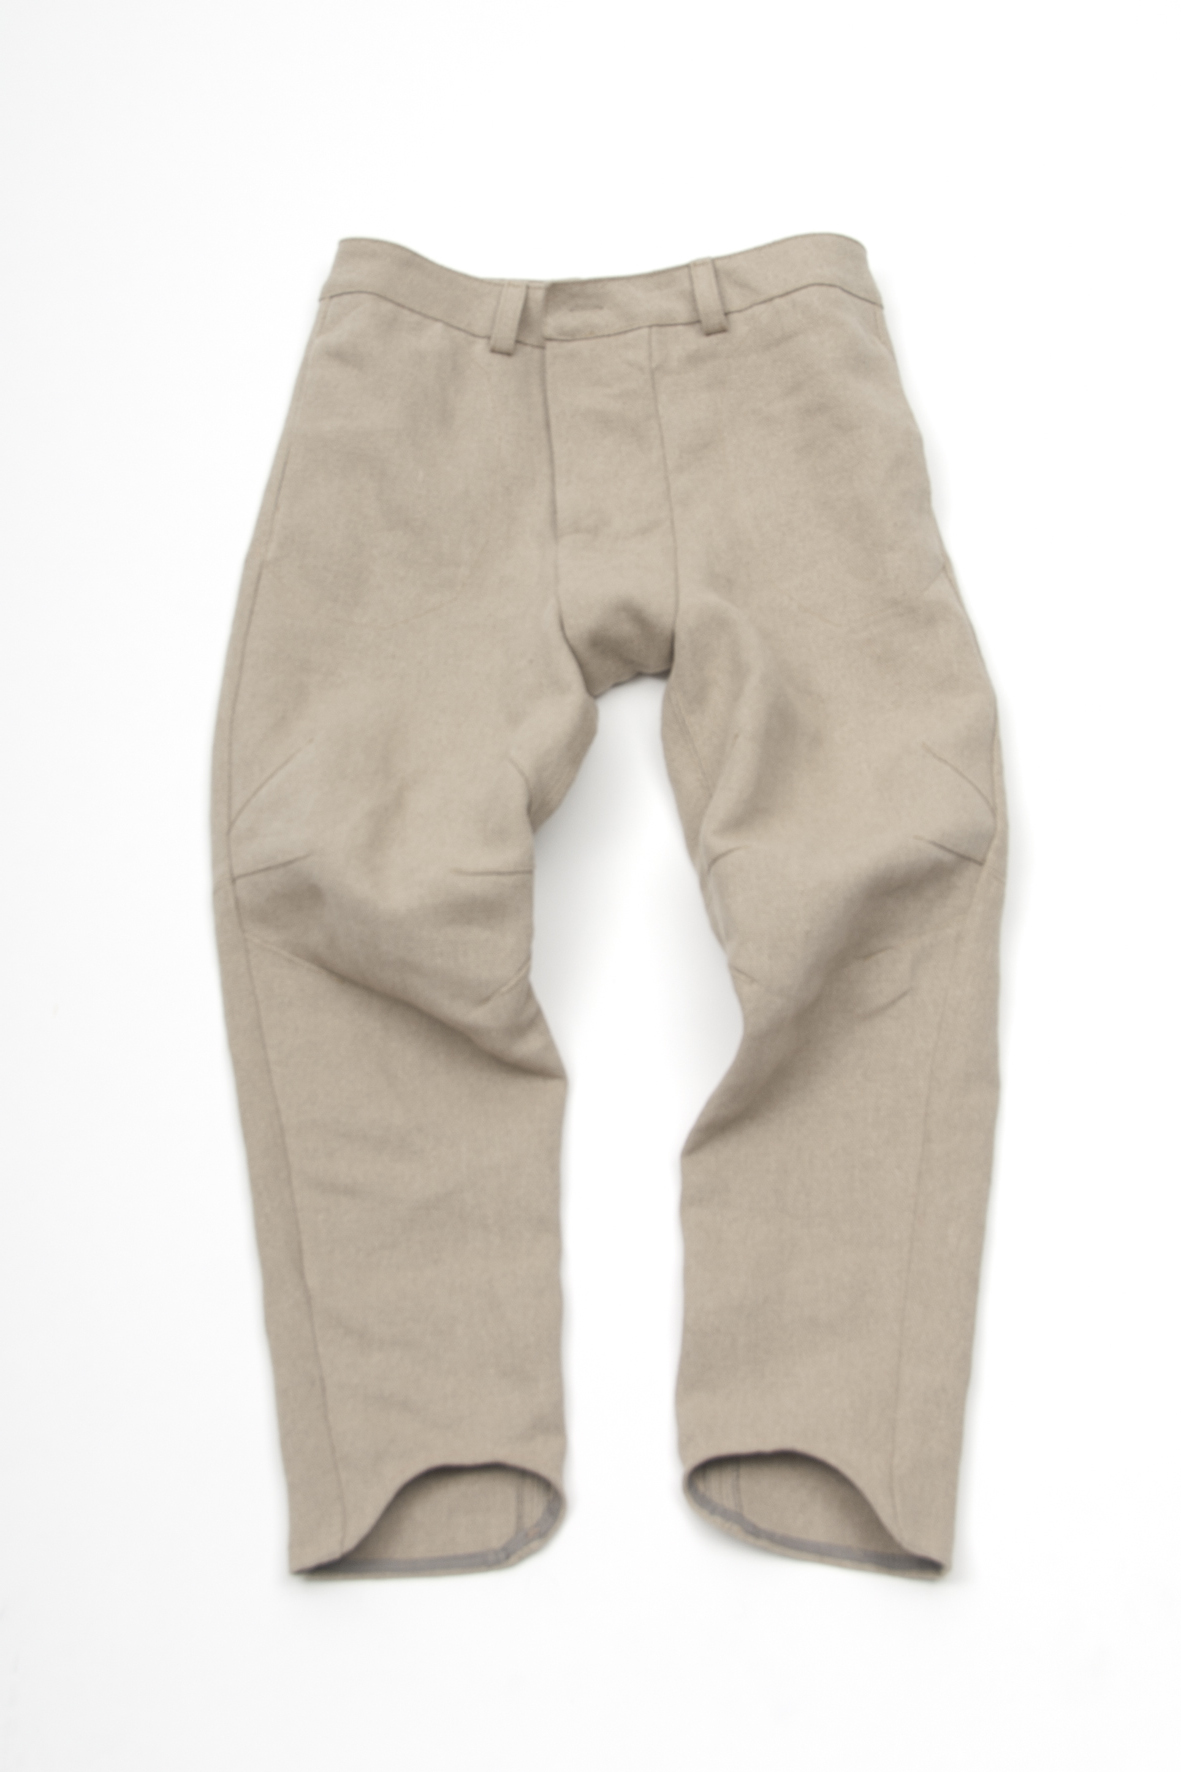 ClangBoomSteam hemp trousers close-up